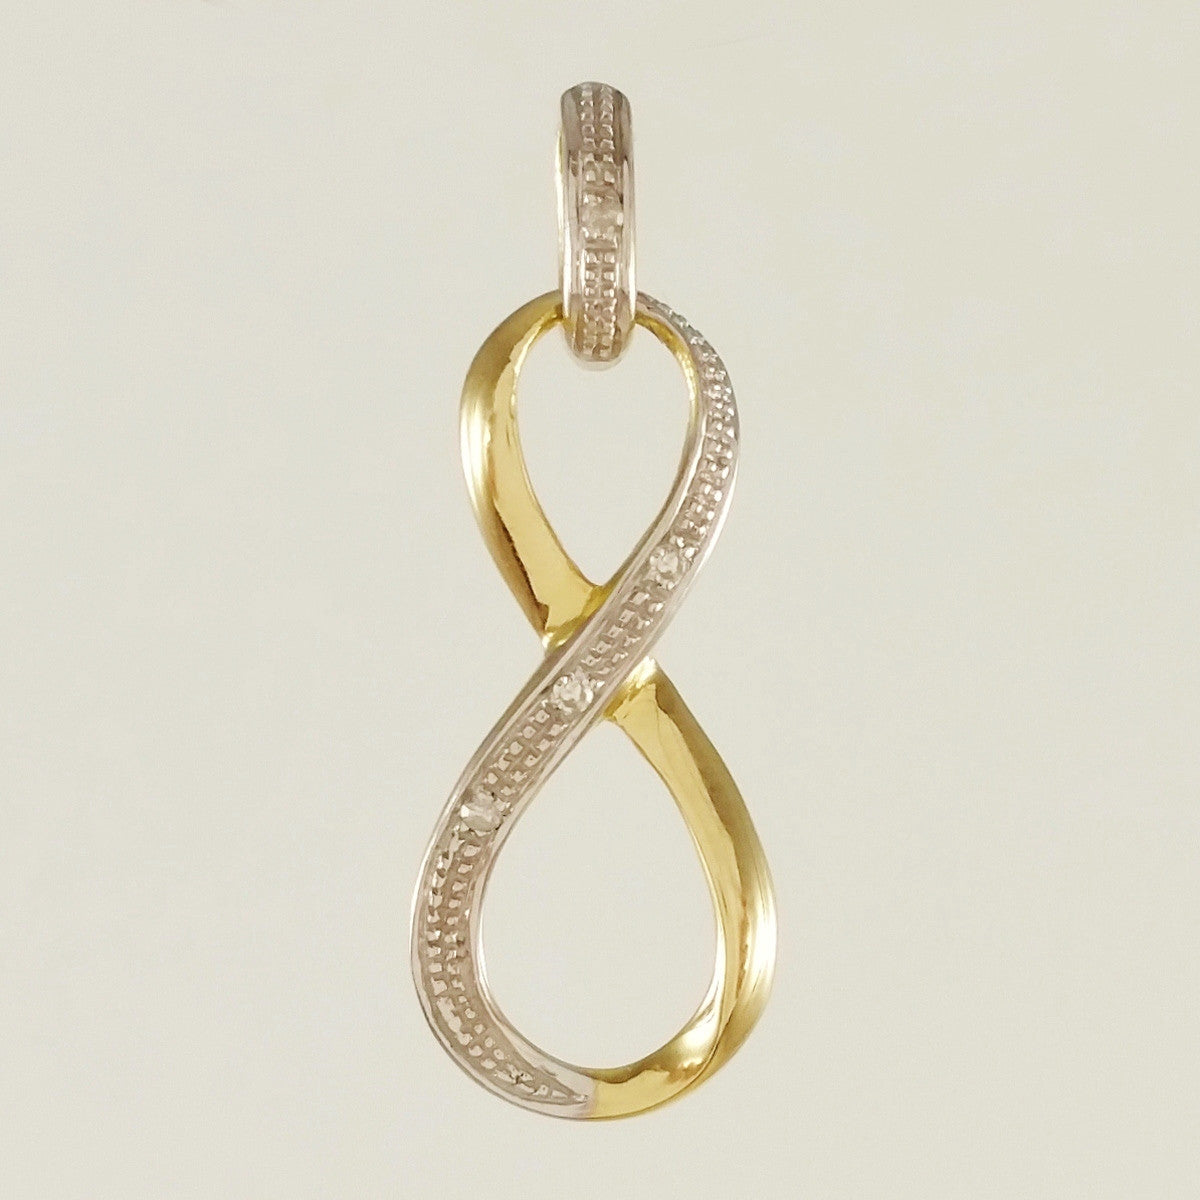 9K SOLID GOLD 0.02CT INFINITY ETERNITY PENDANT WITH 4 DIAMONDS.